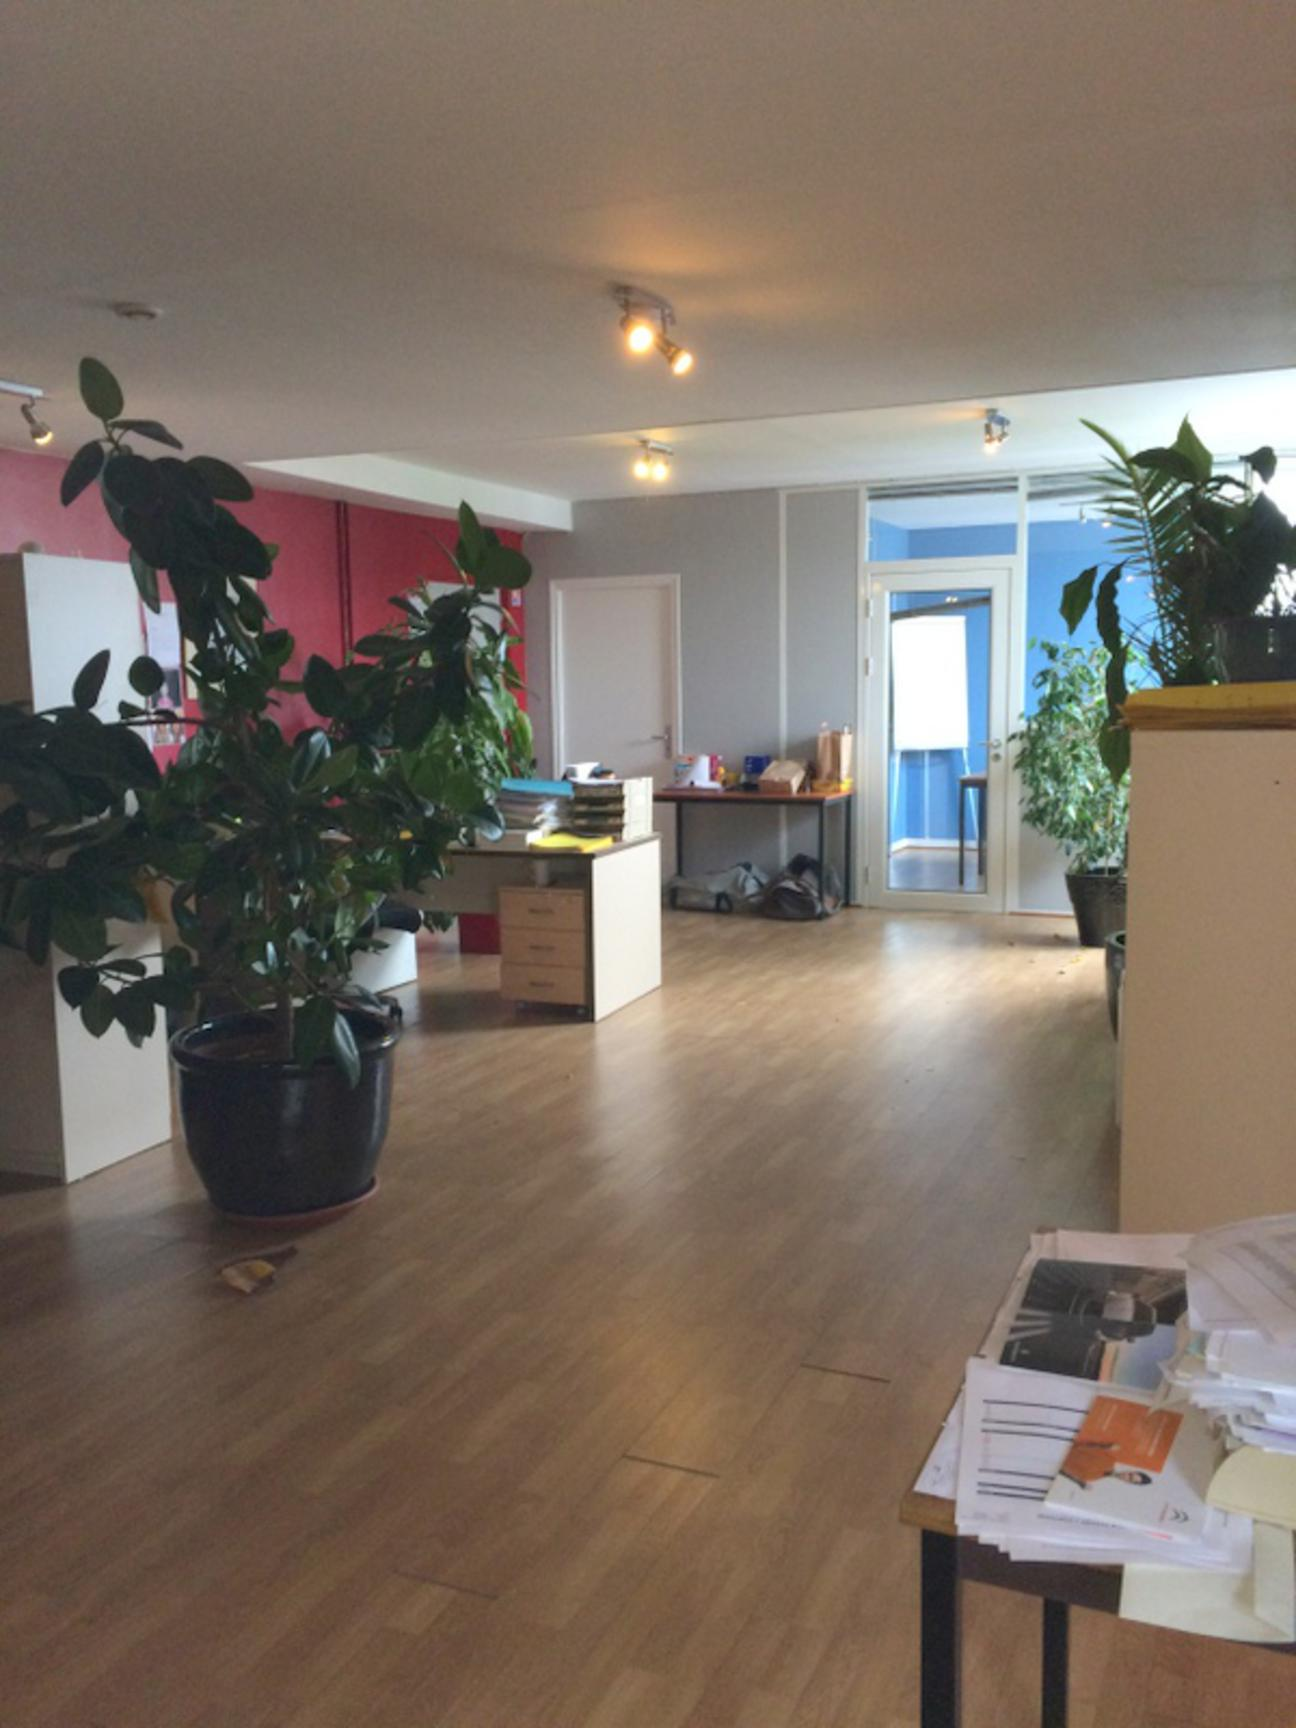 Cabinet noe immobilier agence immobili re troyes 10000 for Agence immo troyes